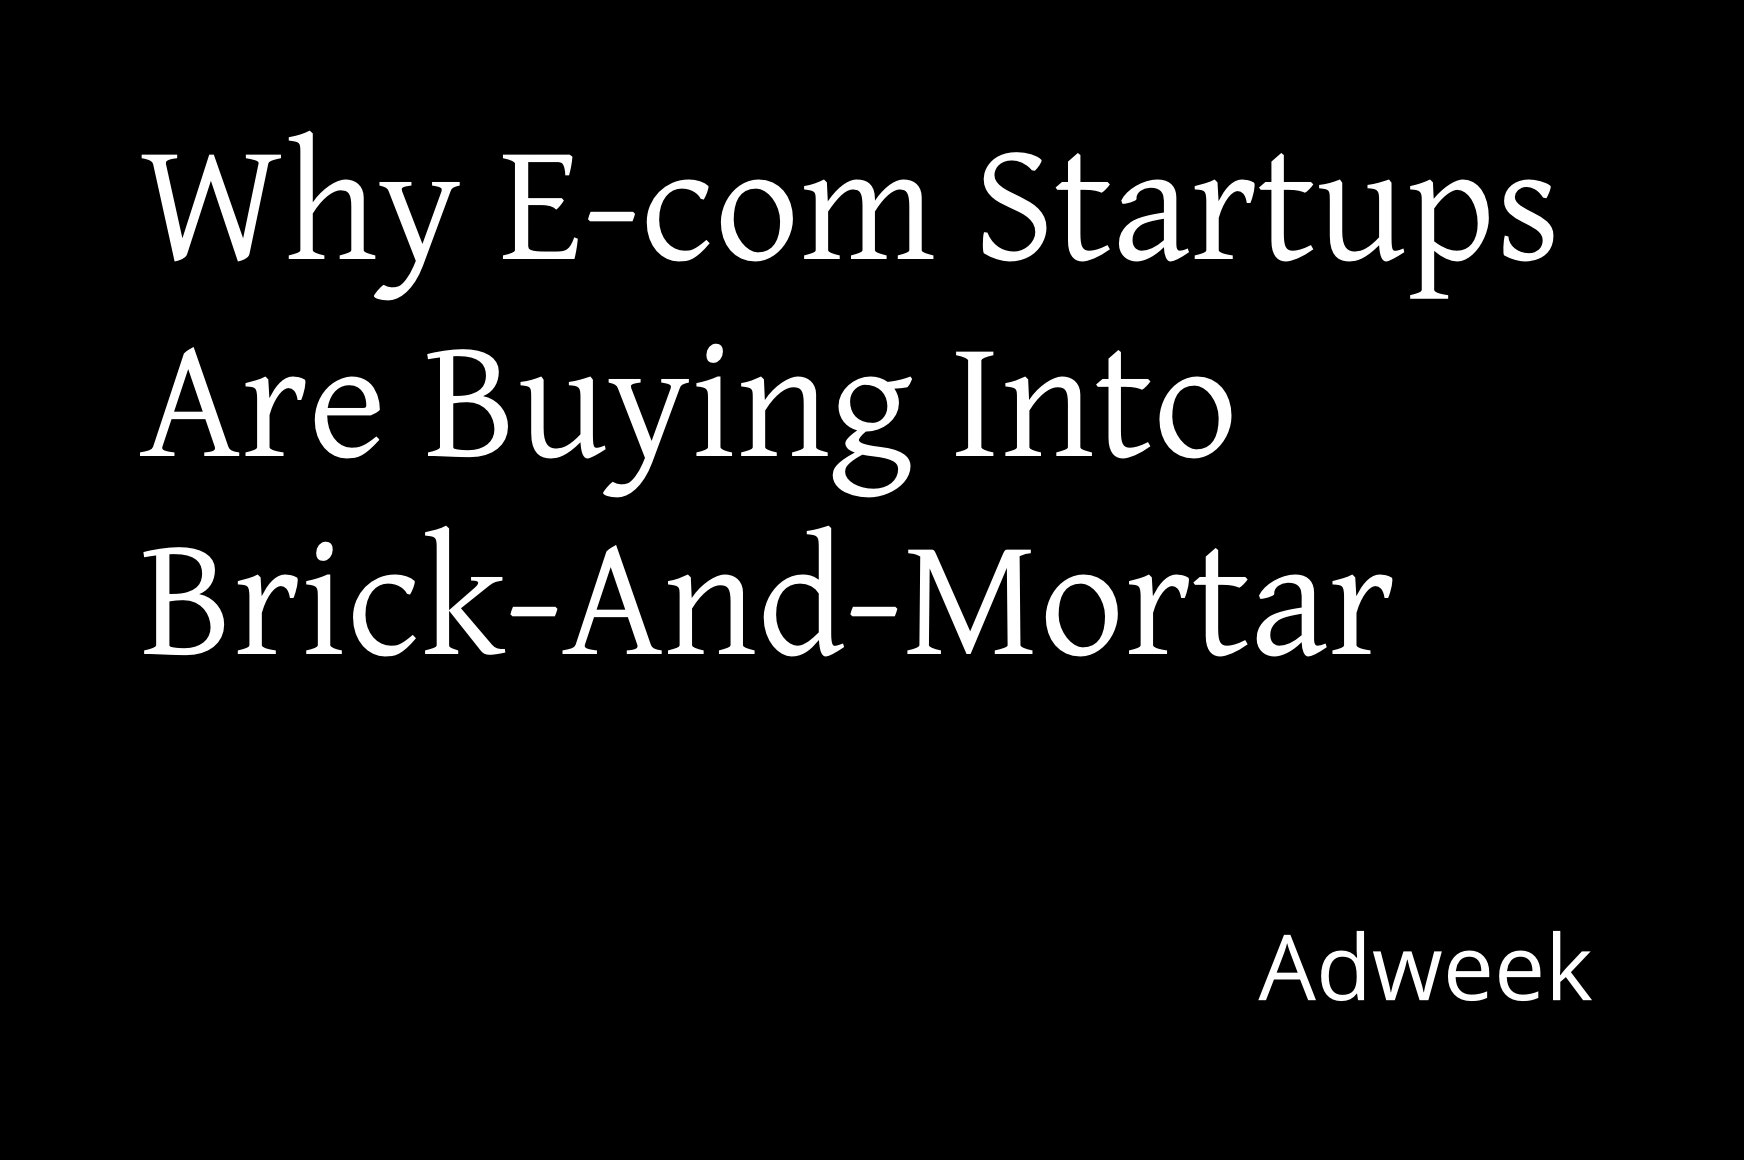 Why Ecommerce Startups Are Buying Into Brick And Mortar - Adweek